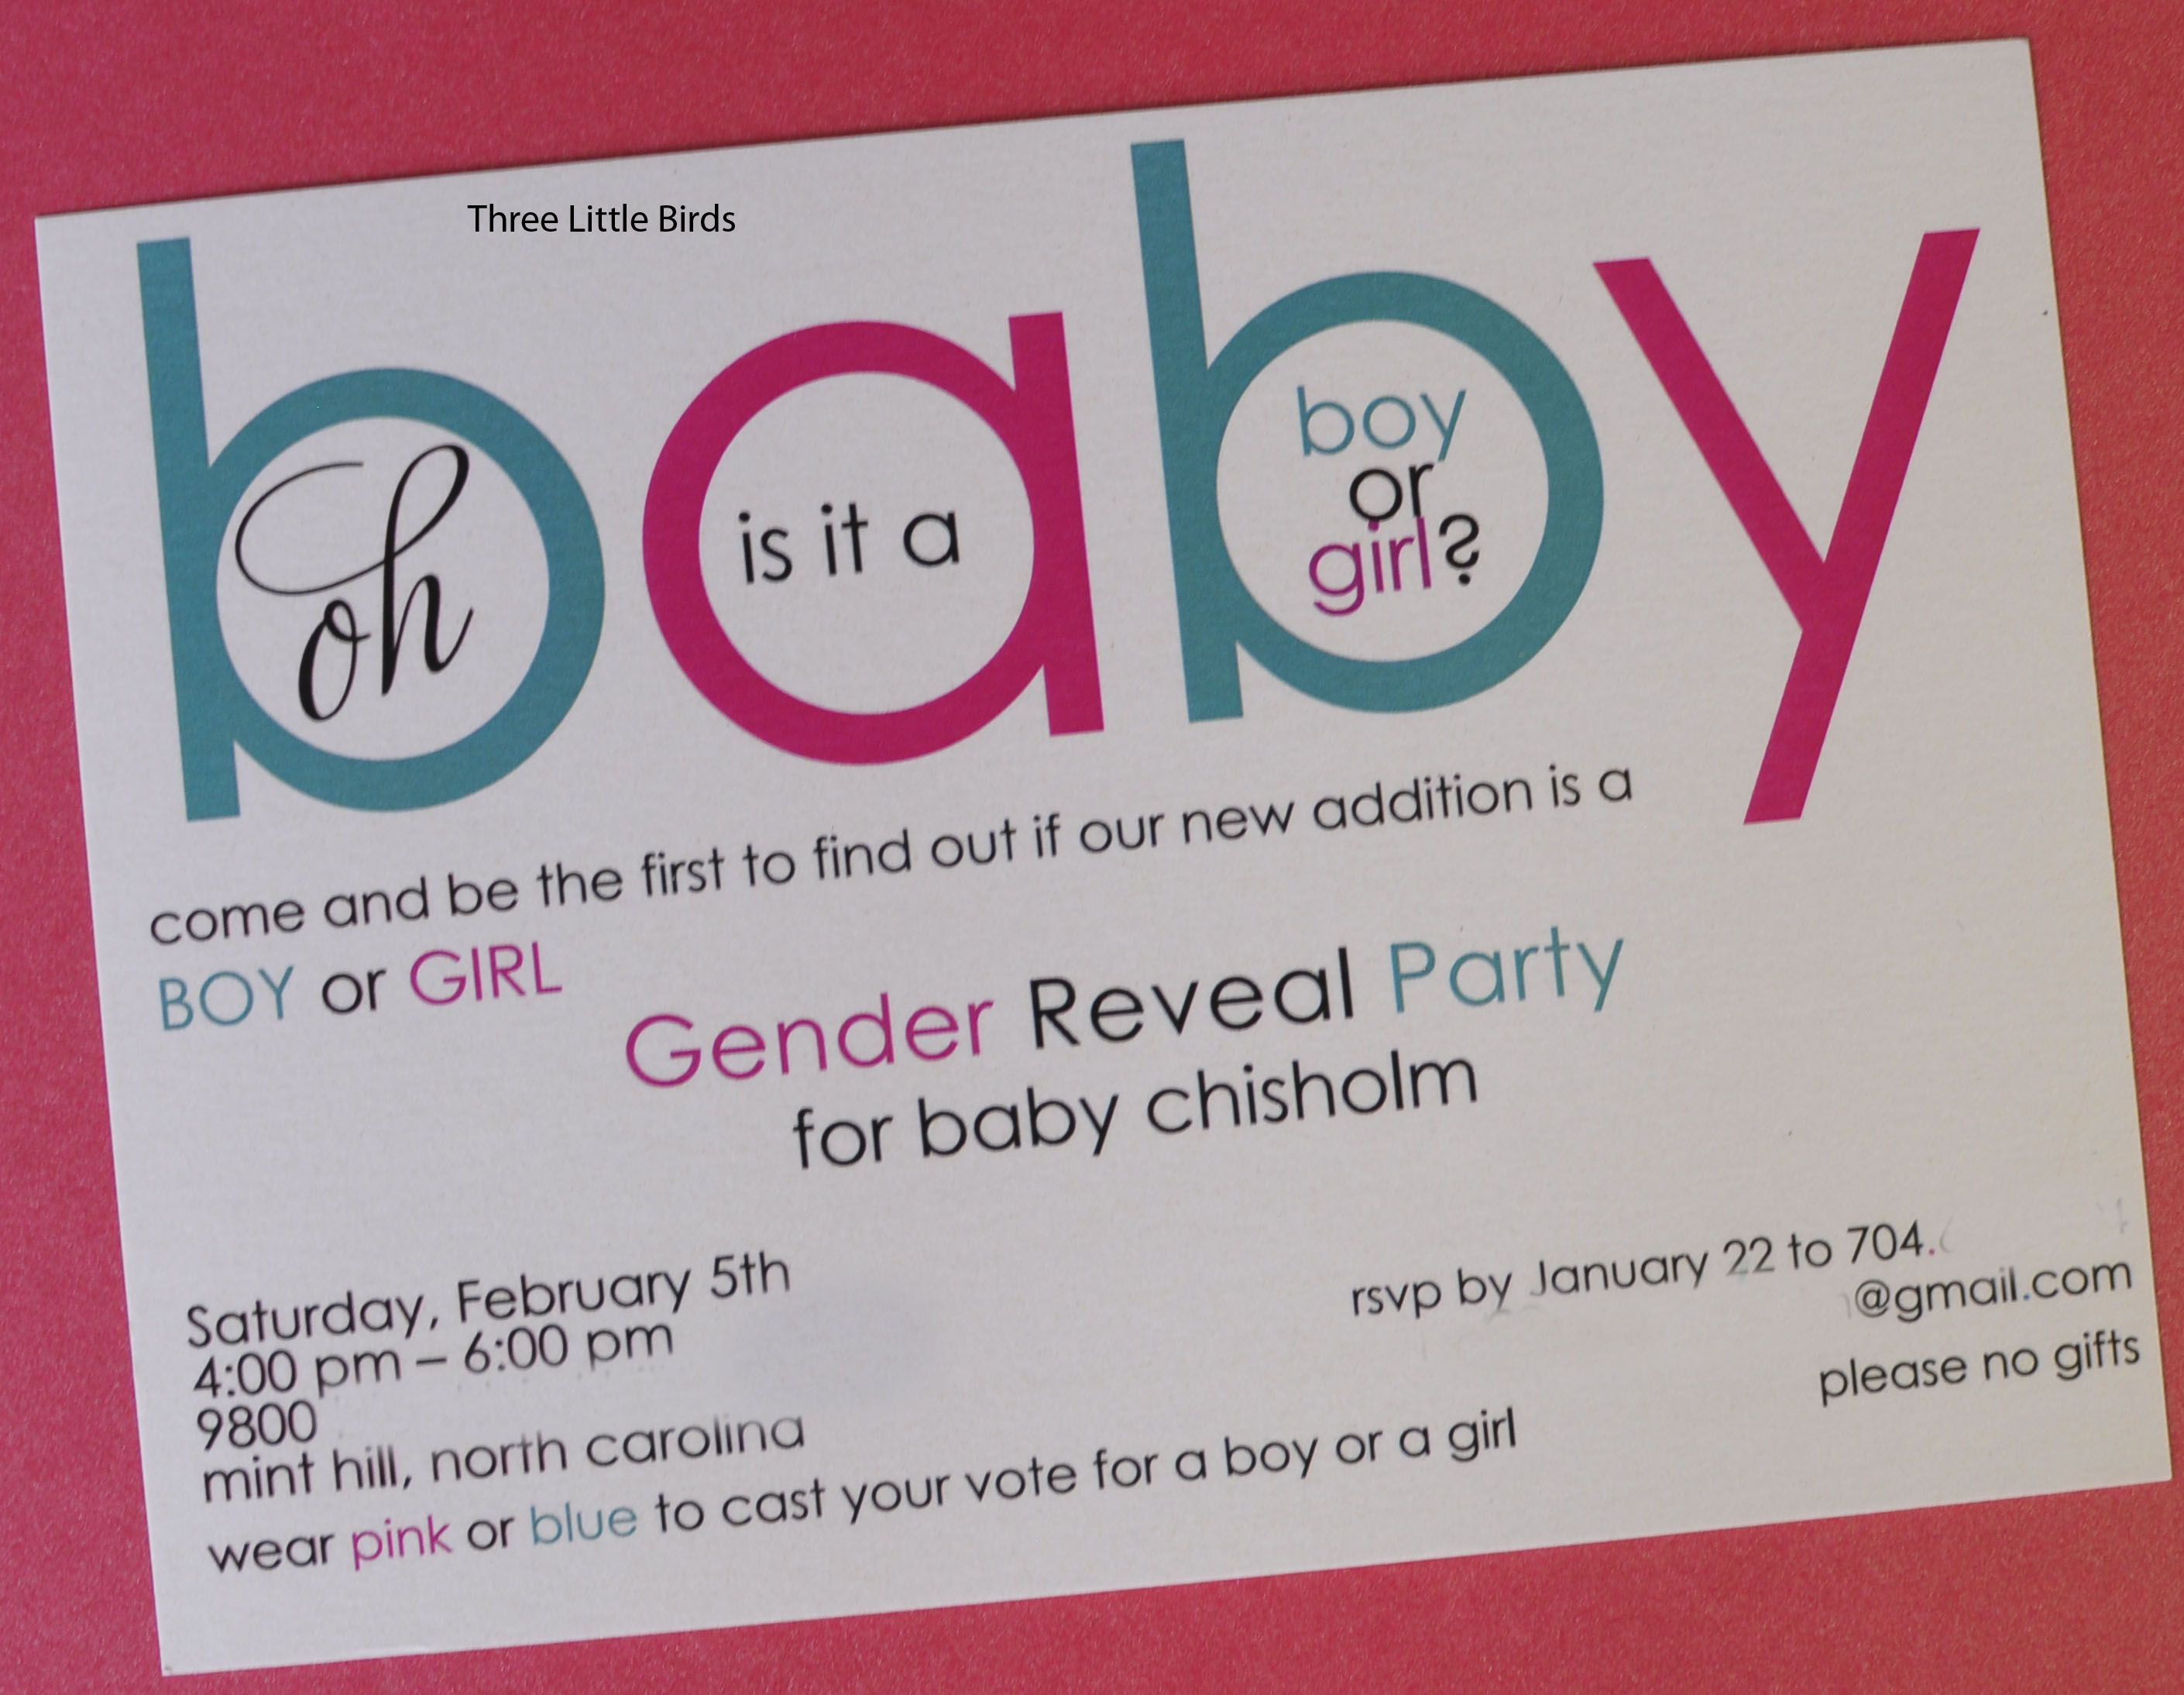 Gender Reveal – Is it a Boy or a Girl? | Gender reveal, Reveal ...